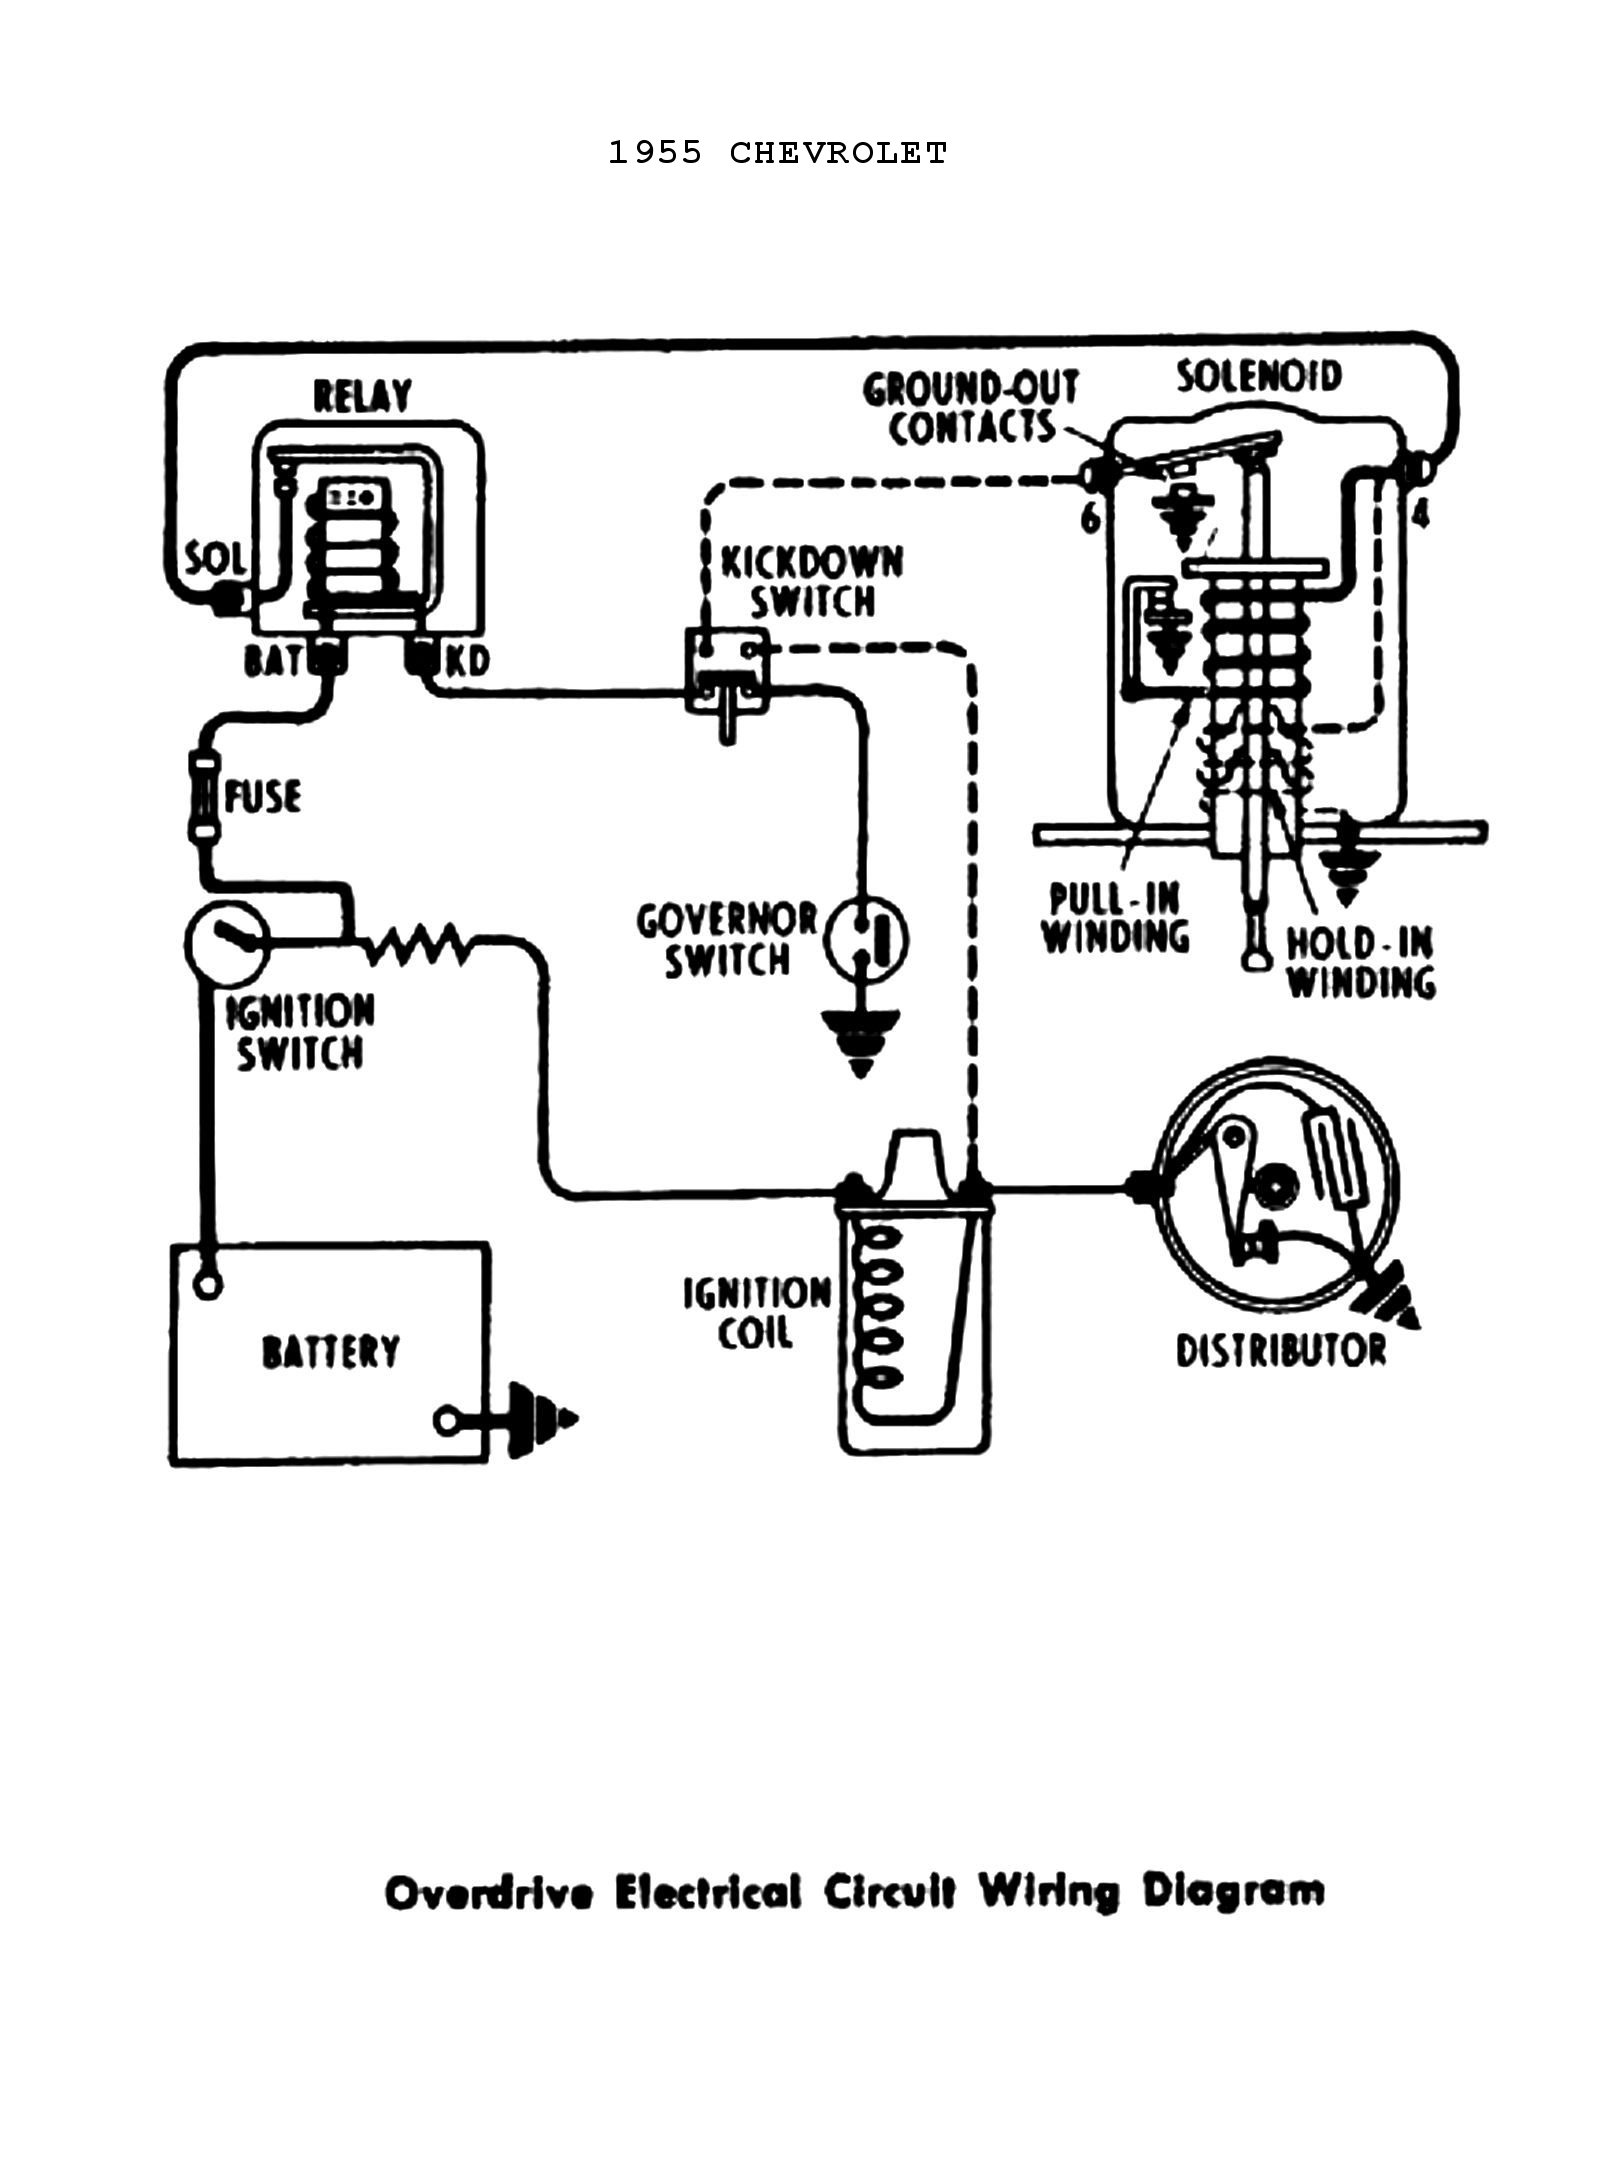 Ford Distributor Wiring Drawing Library. 1946 Ford Distributor Wiring Diagram Schematics Coil Chevy Diagrams Ignition. Chevrolet. 1968 327 Chevy Distributor Wiring Diagram At Scoala.co